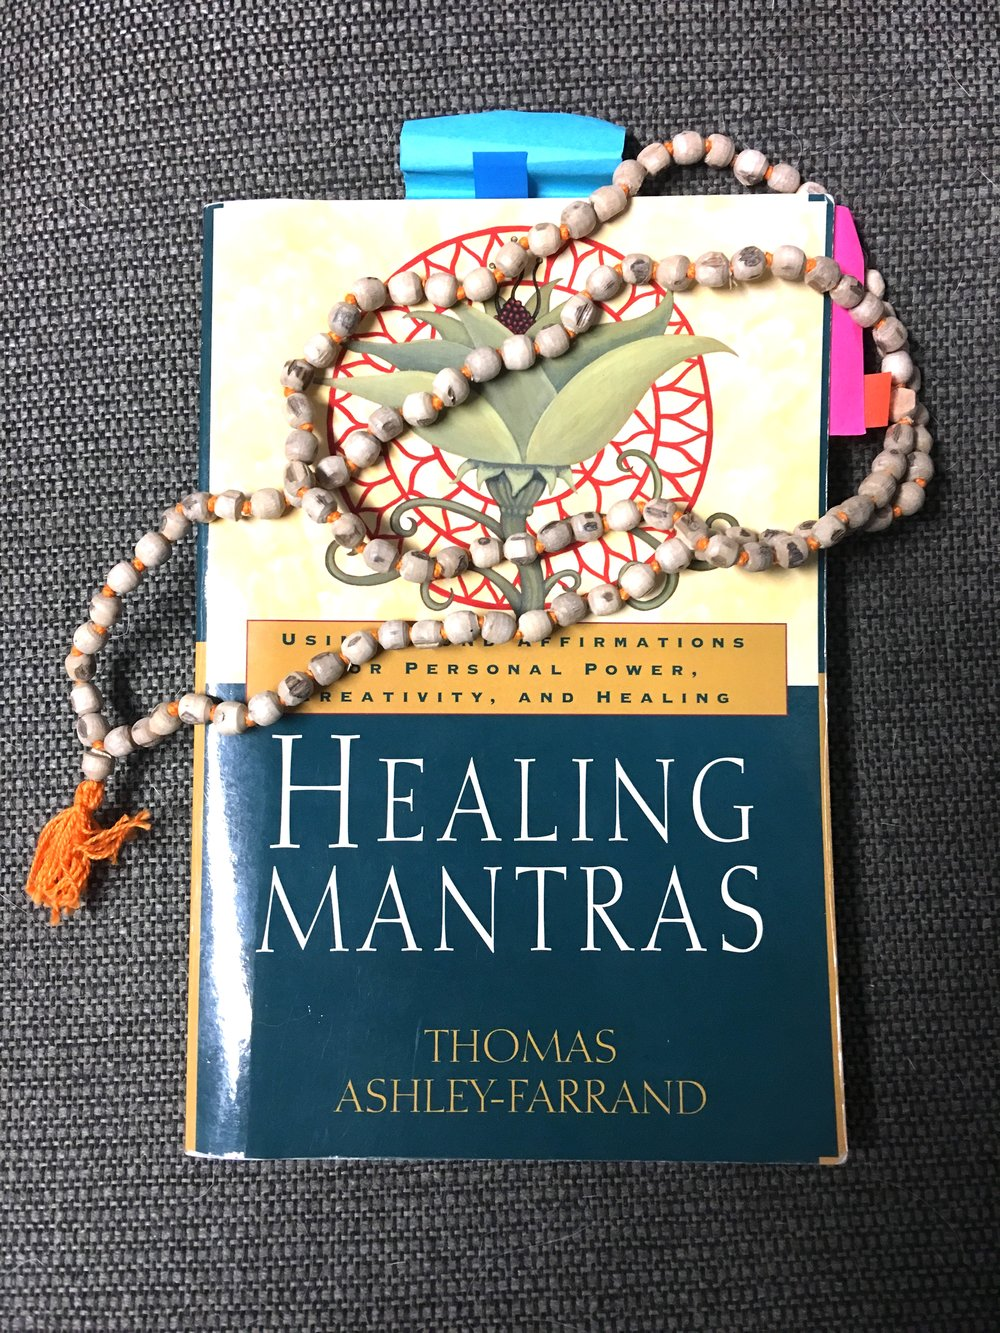 Healing Mantras is available in our studio boutique.